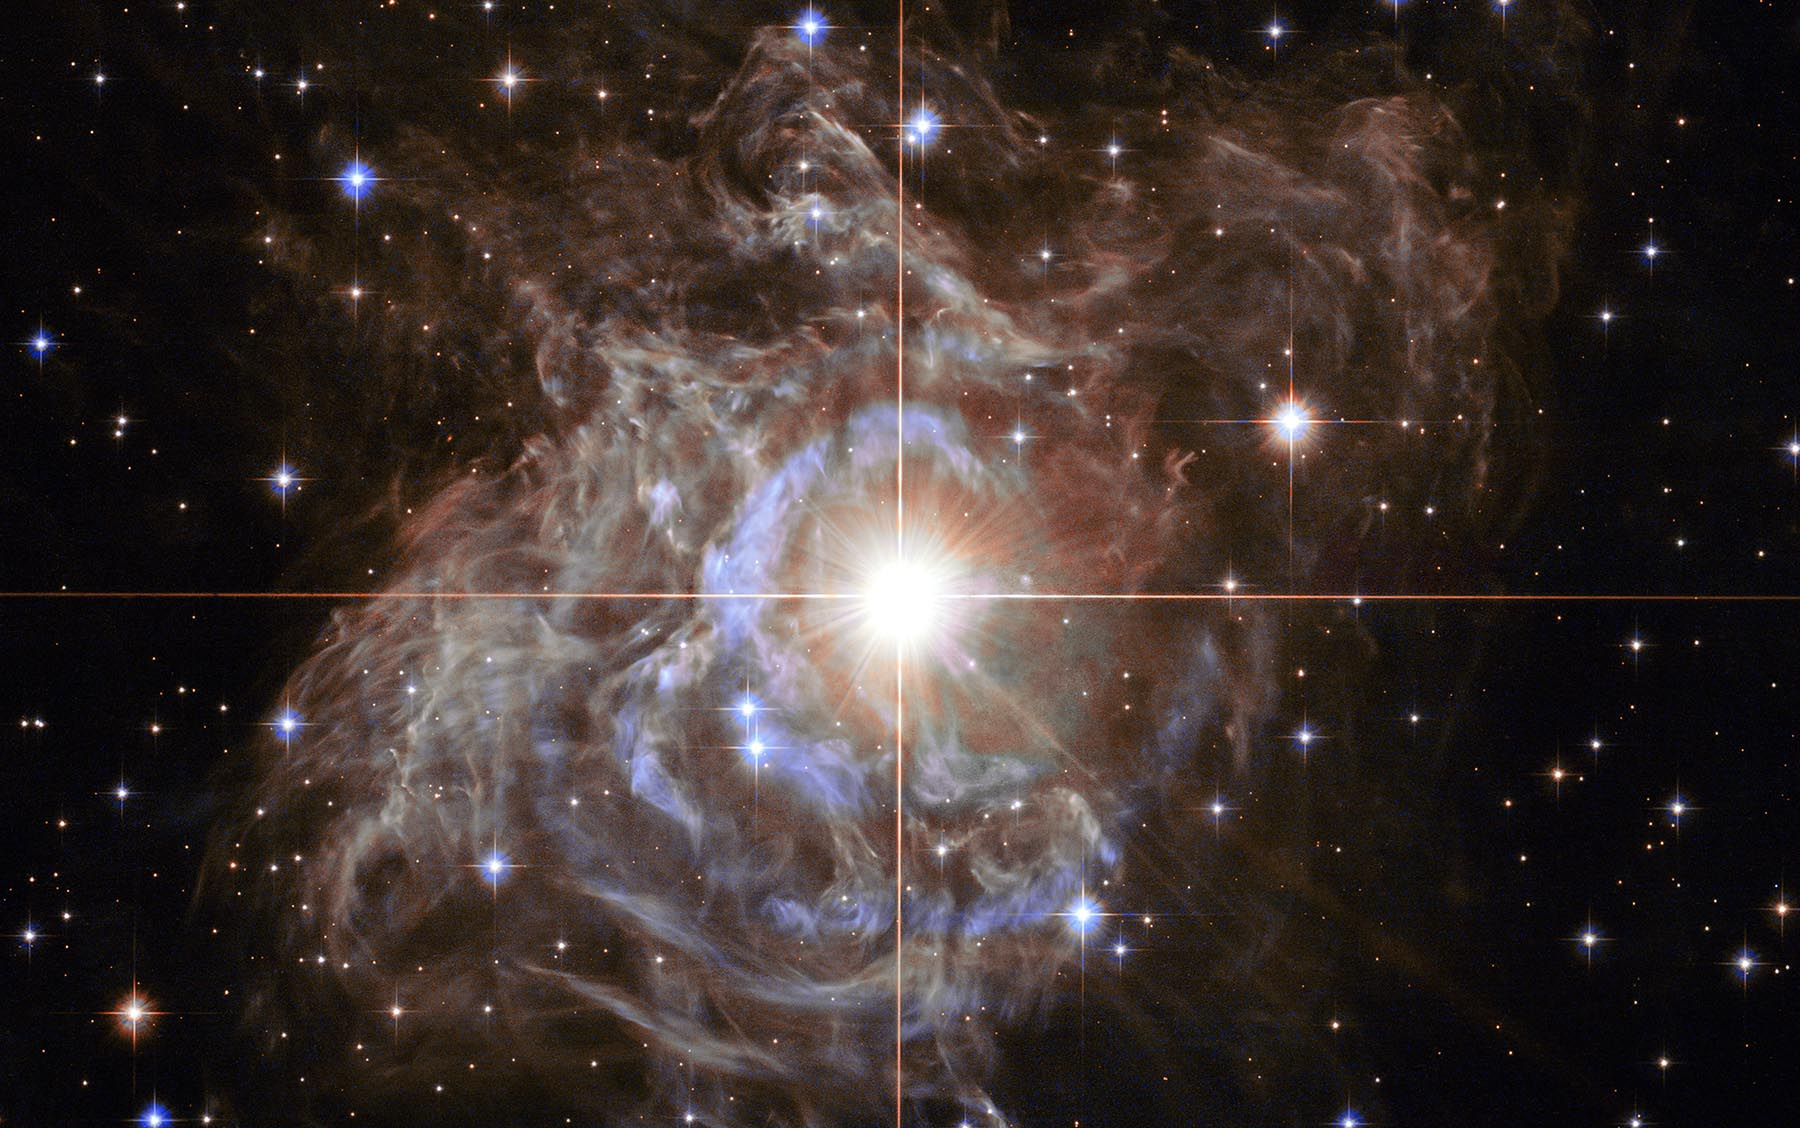 At the centre of the image is an important star called the RS Puppis, a Cepheid variable star which is a class of stars whose luminosity is used to estimate distances to nearby galaxies. This one is 15,000 times brighter than our sun.